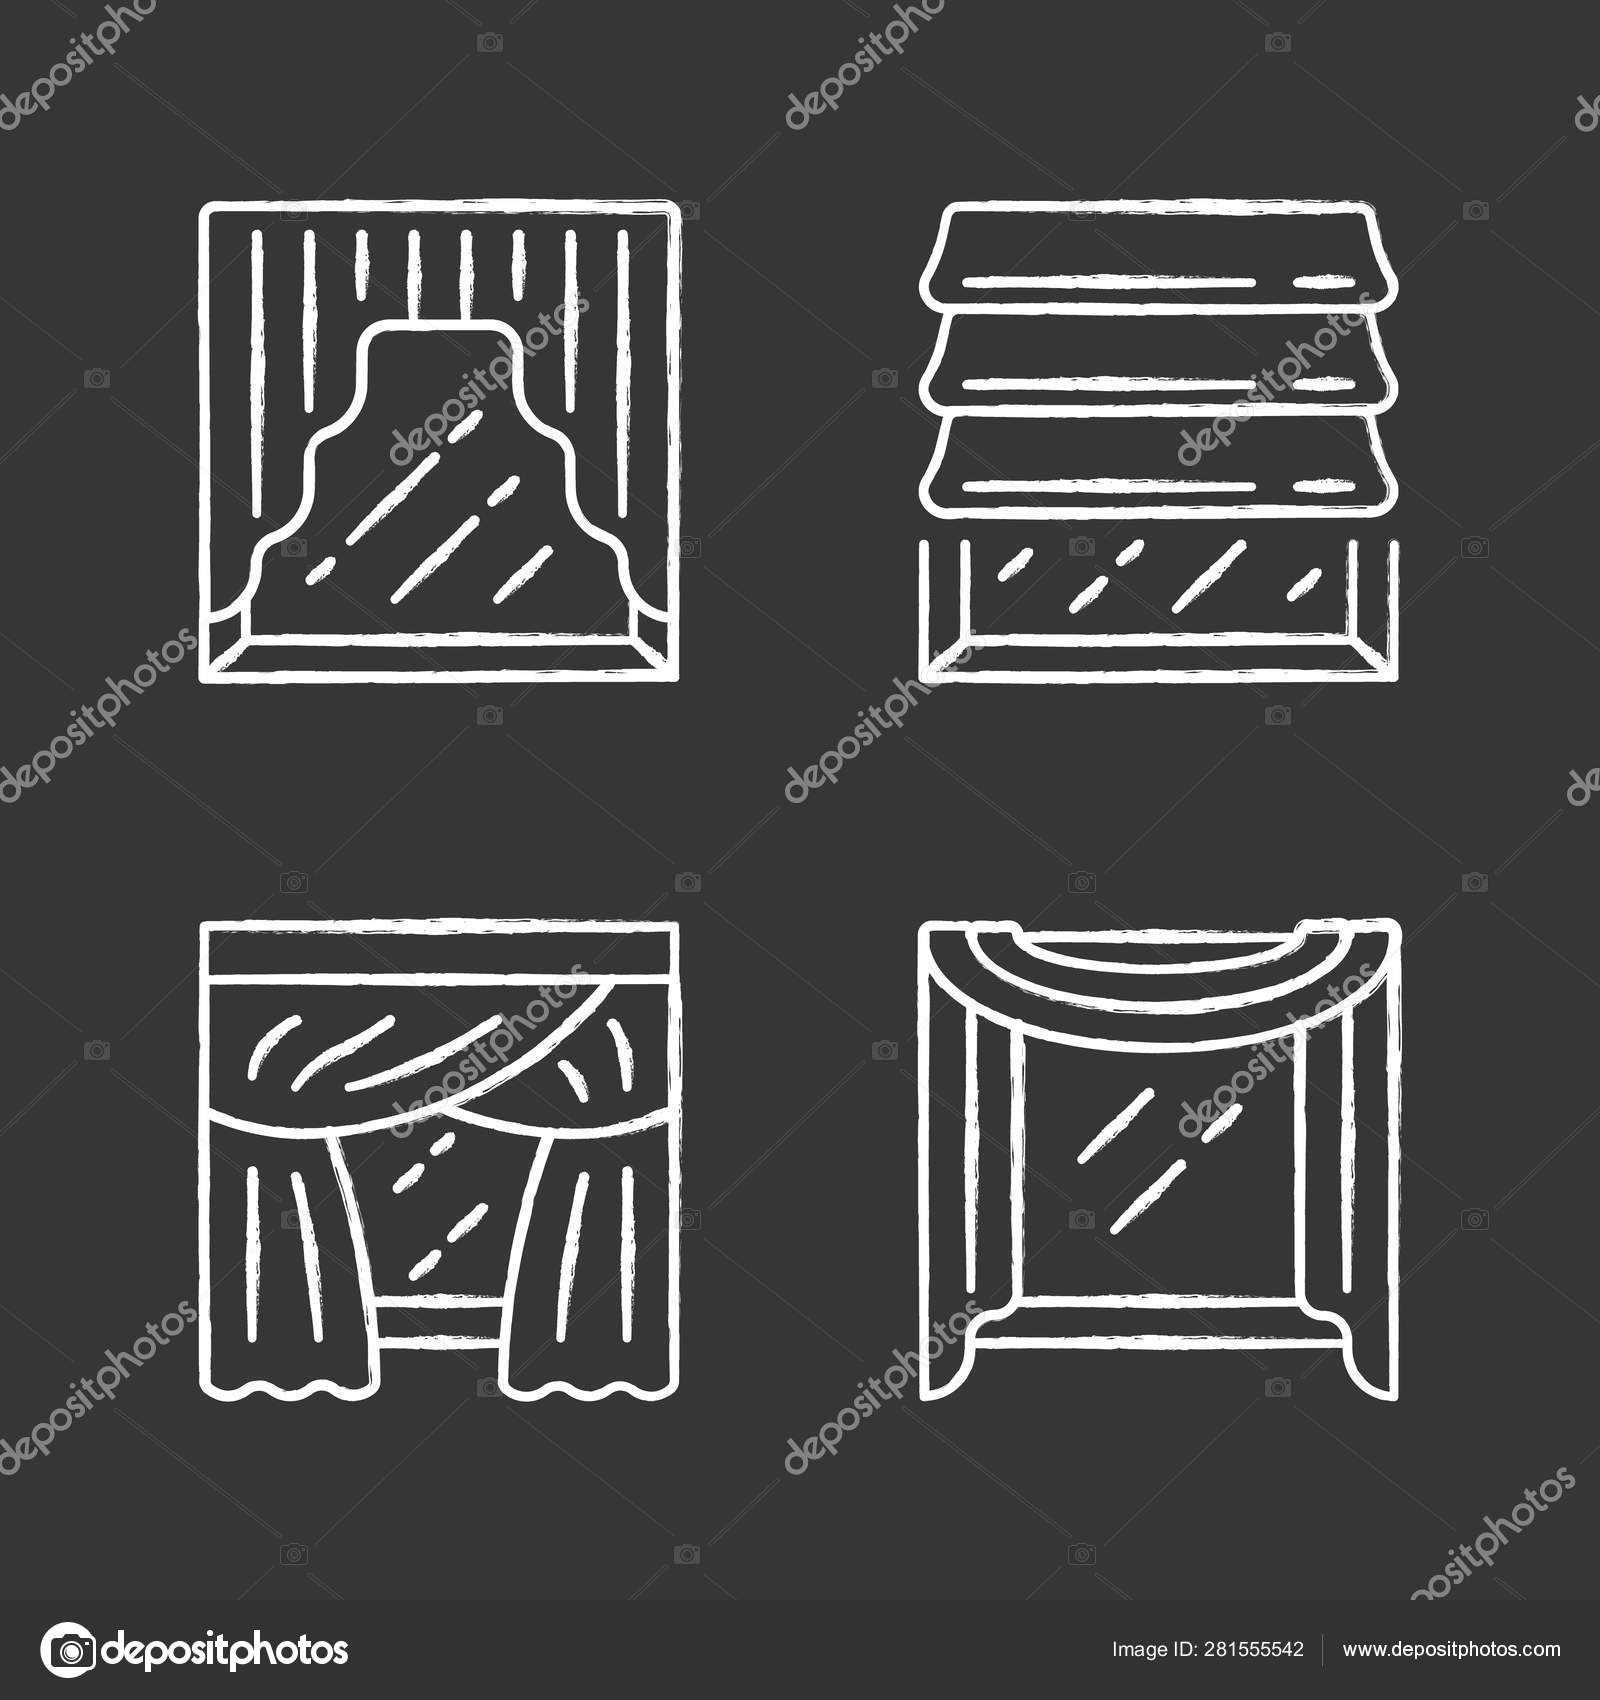 Window Drapes Chalk Icons Set Roman Shades Swags Priscilla Curtains Window Scarf Home Interior Decor Kitchen Bedroom Living Room Decoration Isolated Vector Chalkboard Illustrations Vector Image By C Bsd Vector Stock 281555542